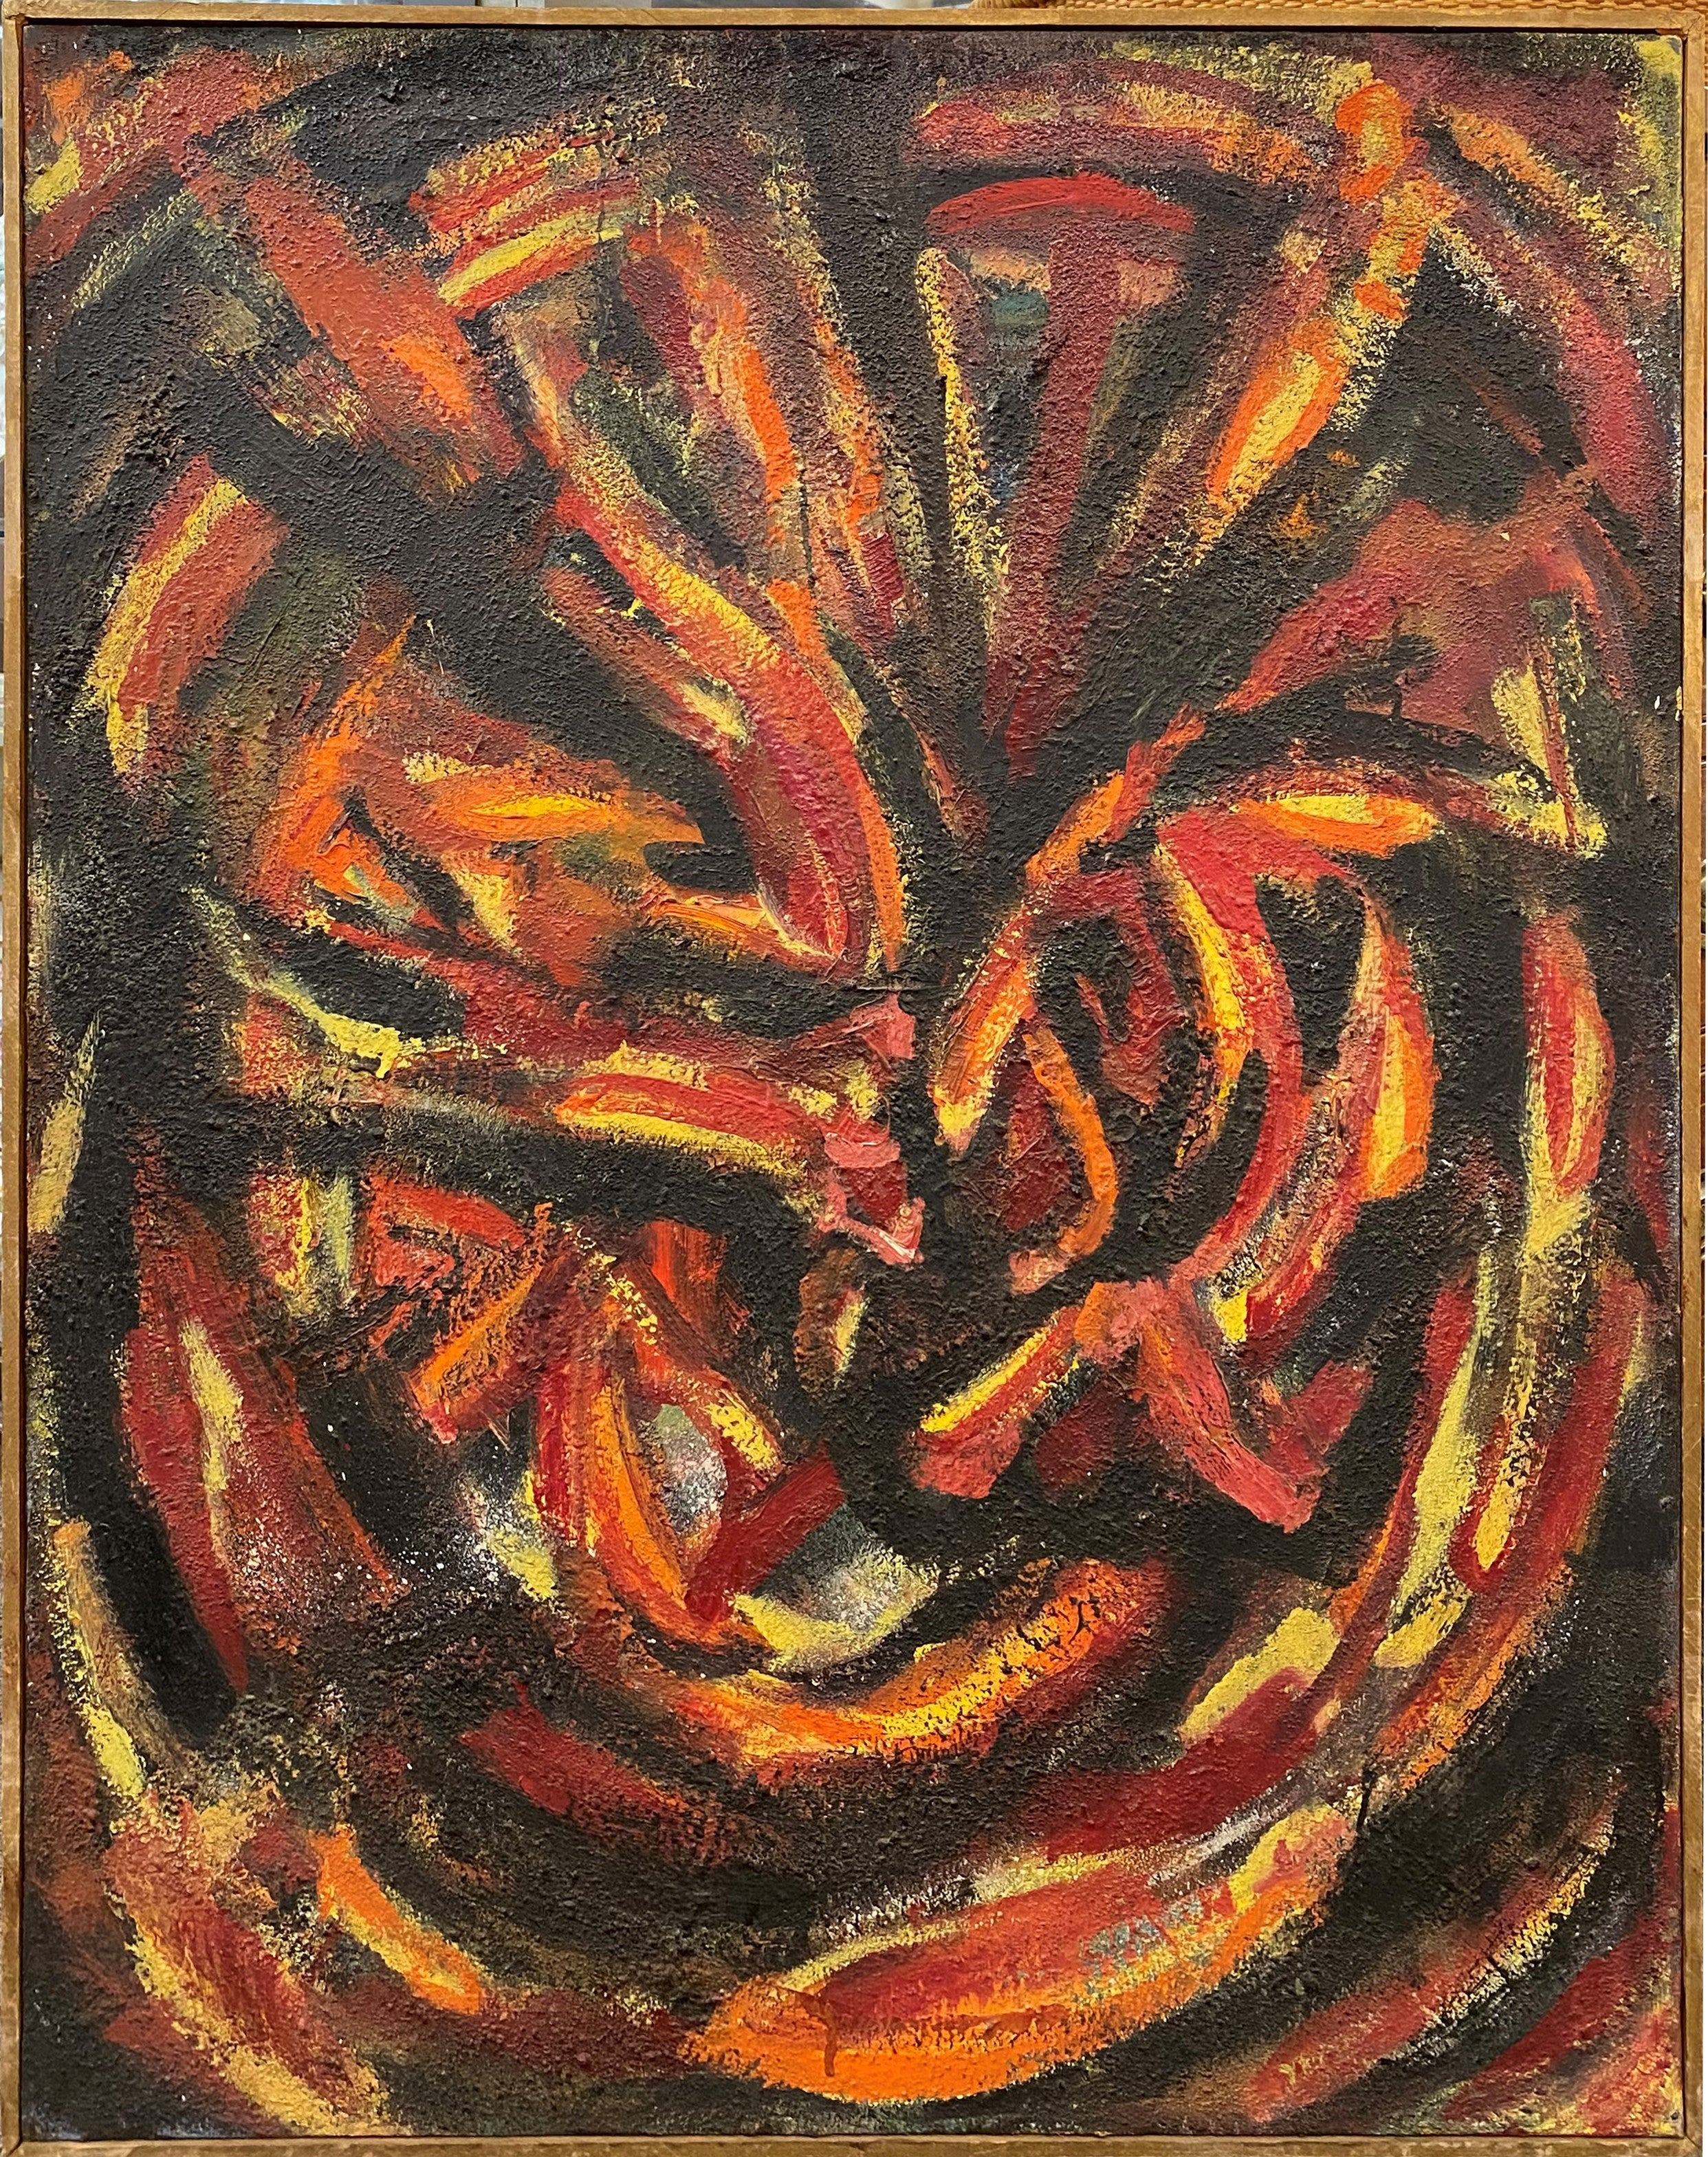 Abstract in Shades of Orange, Yellow, Red, &  Black